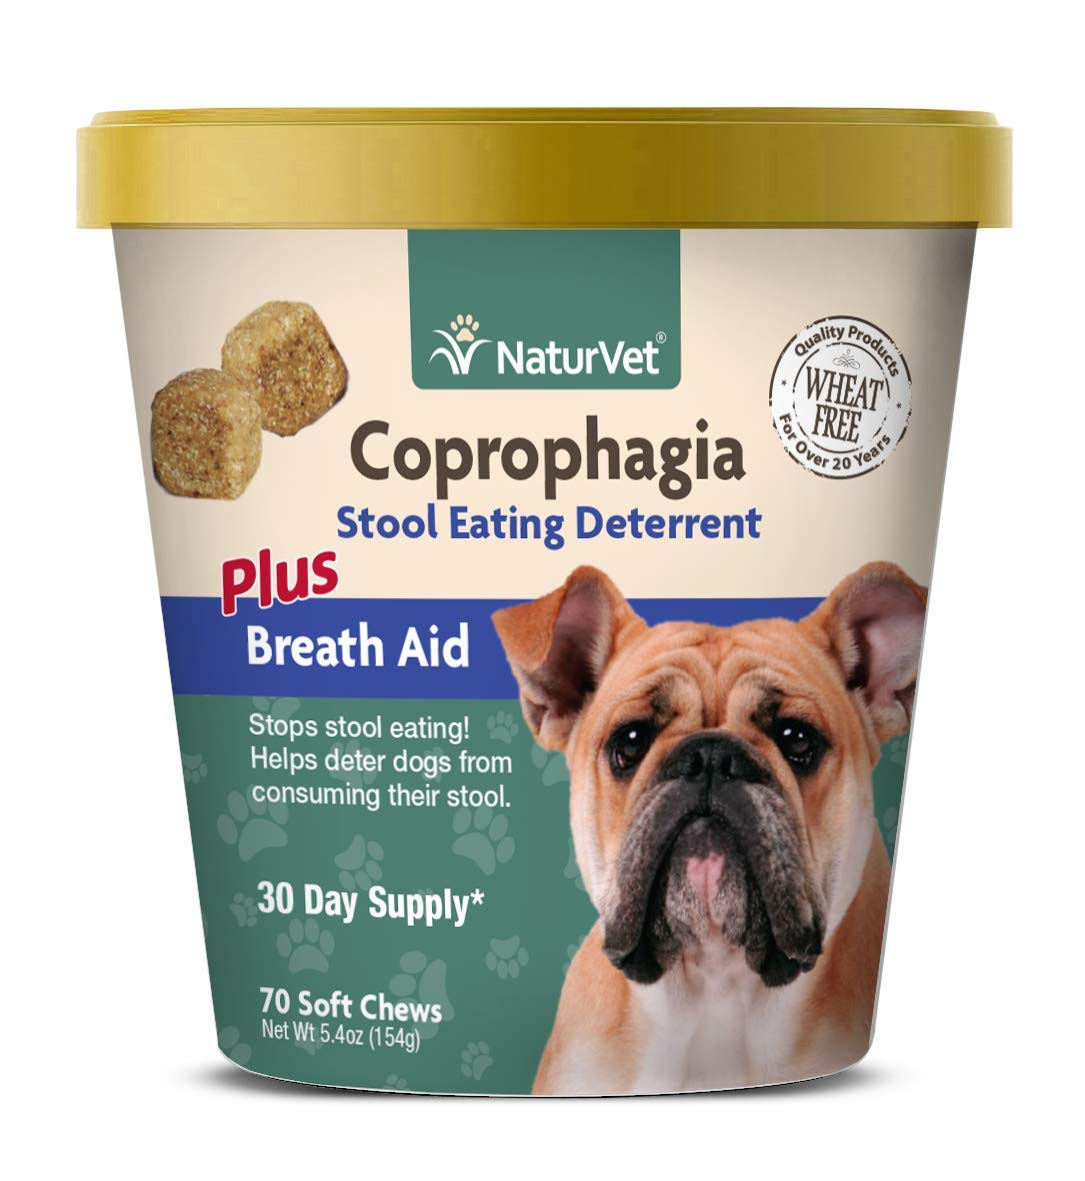 NaturVet - Coprophagia Stool Eating Deterrent Plus Breath Aid - Deters Dogs from Consuming Stool - Enhanced with Breath Freshener, Enzymes & Probiotics - 70 Soft Chews by NaturVet